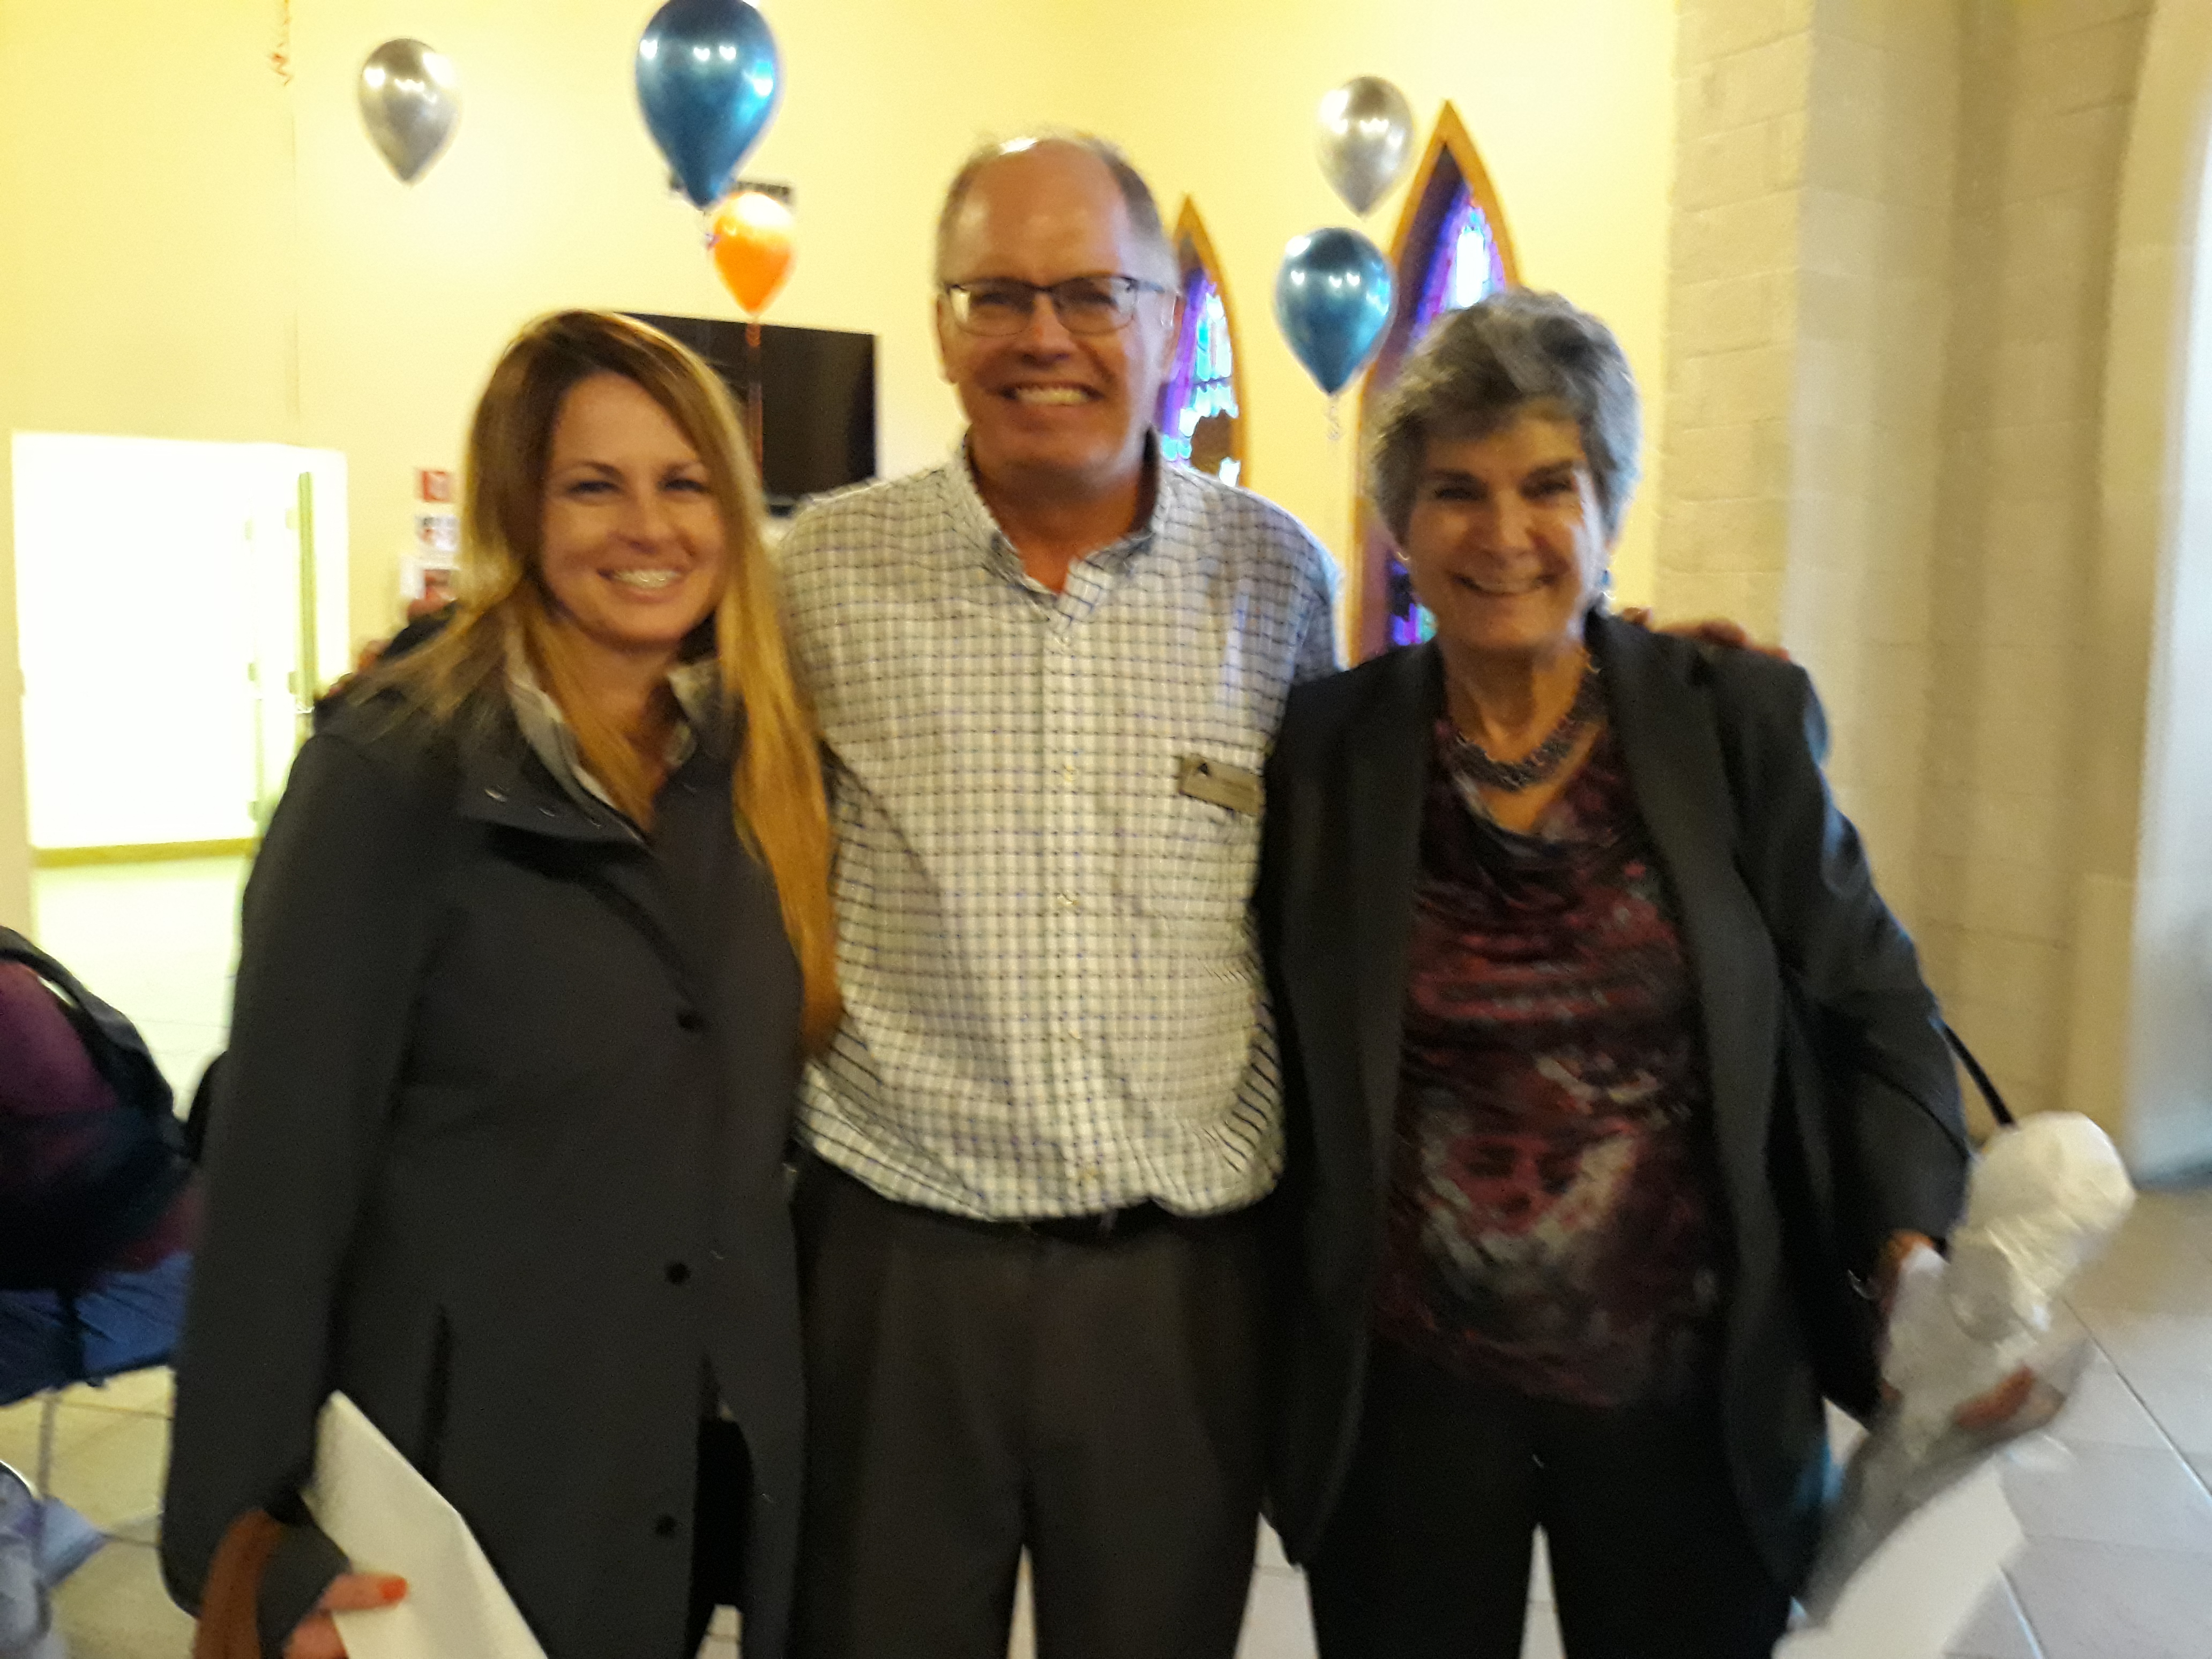 Celebrating the second birthday of Pavilion at the Open House are lf to rt Tiffany Gonzalez, Bluebonnet Trails Director of Behavioral Health; Gordon Butler, Pavilion Executive Director; and Commissioner Cook.